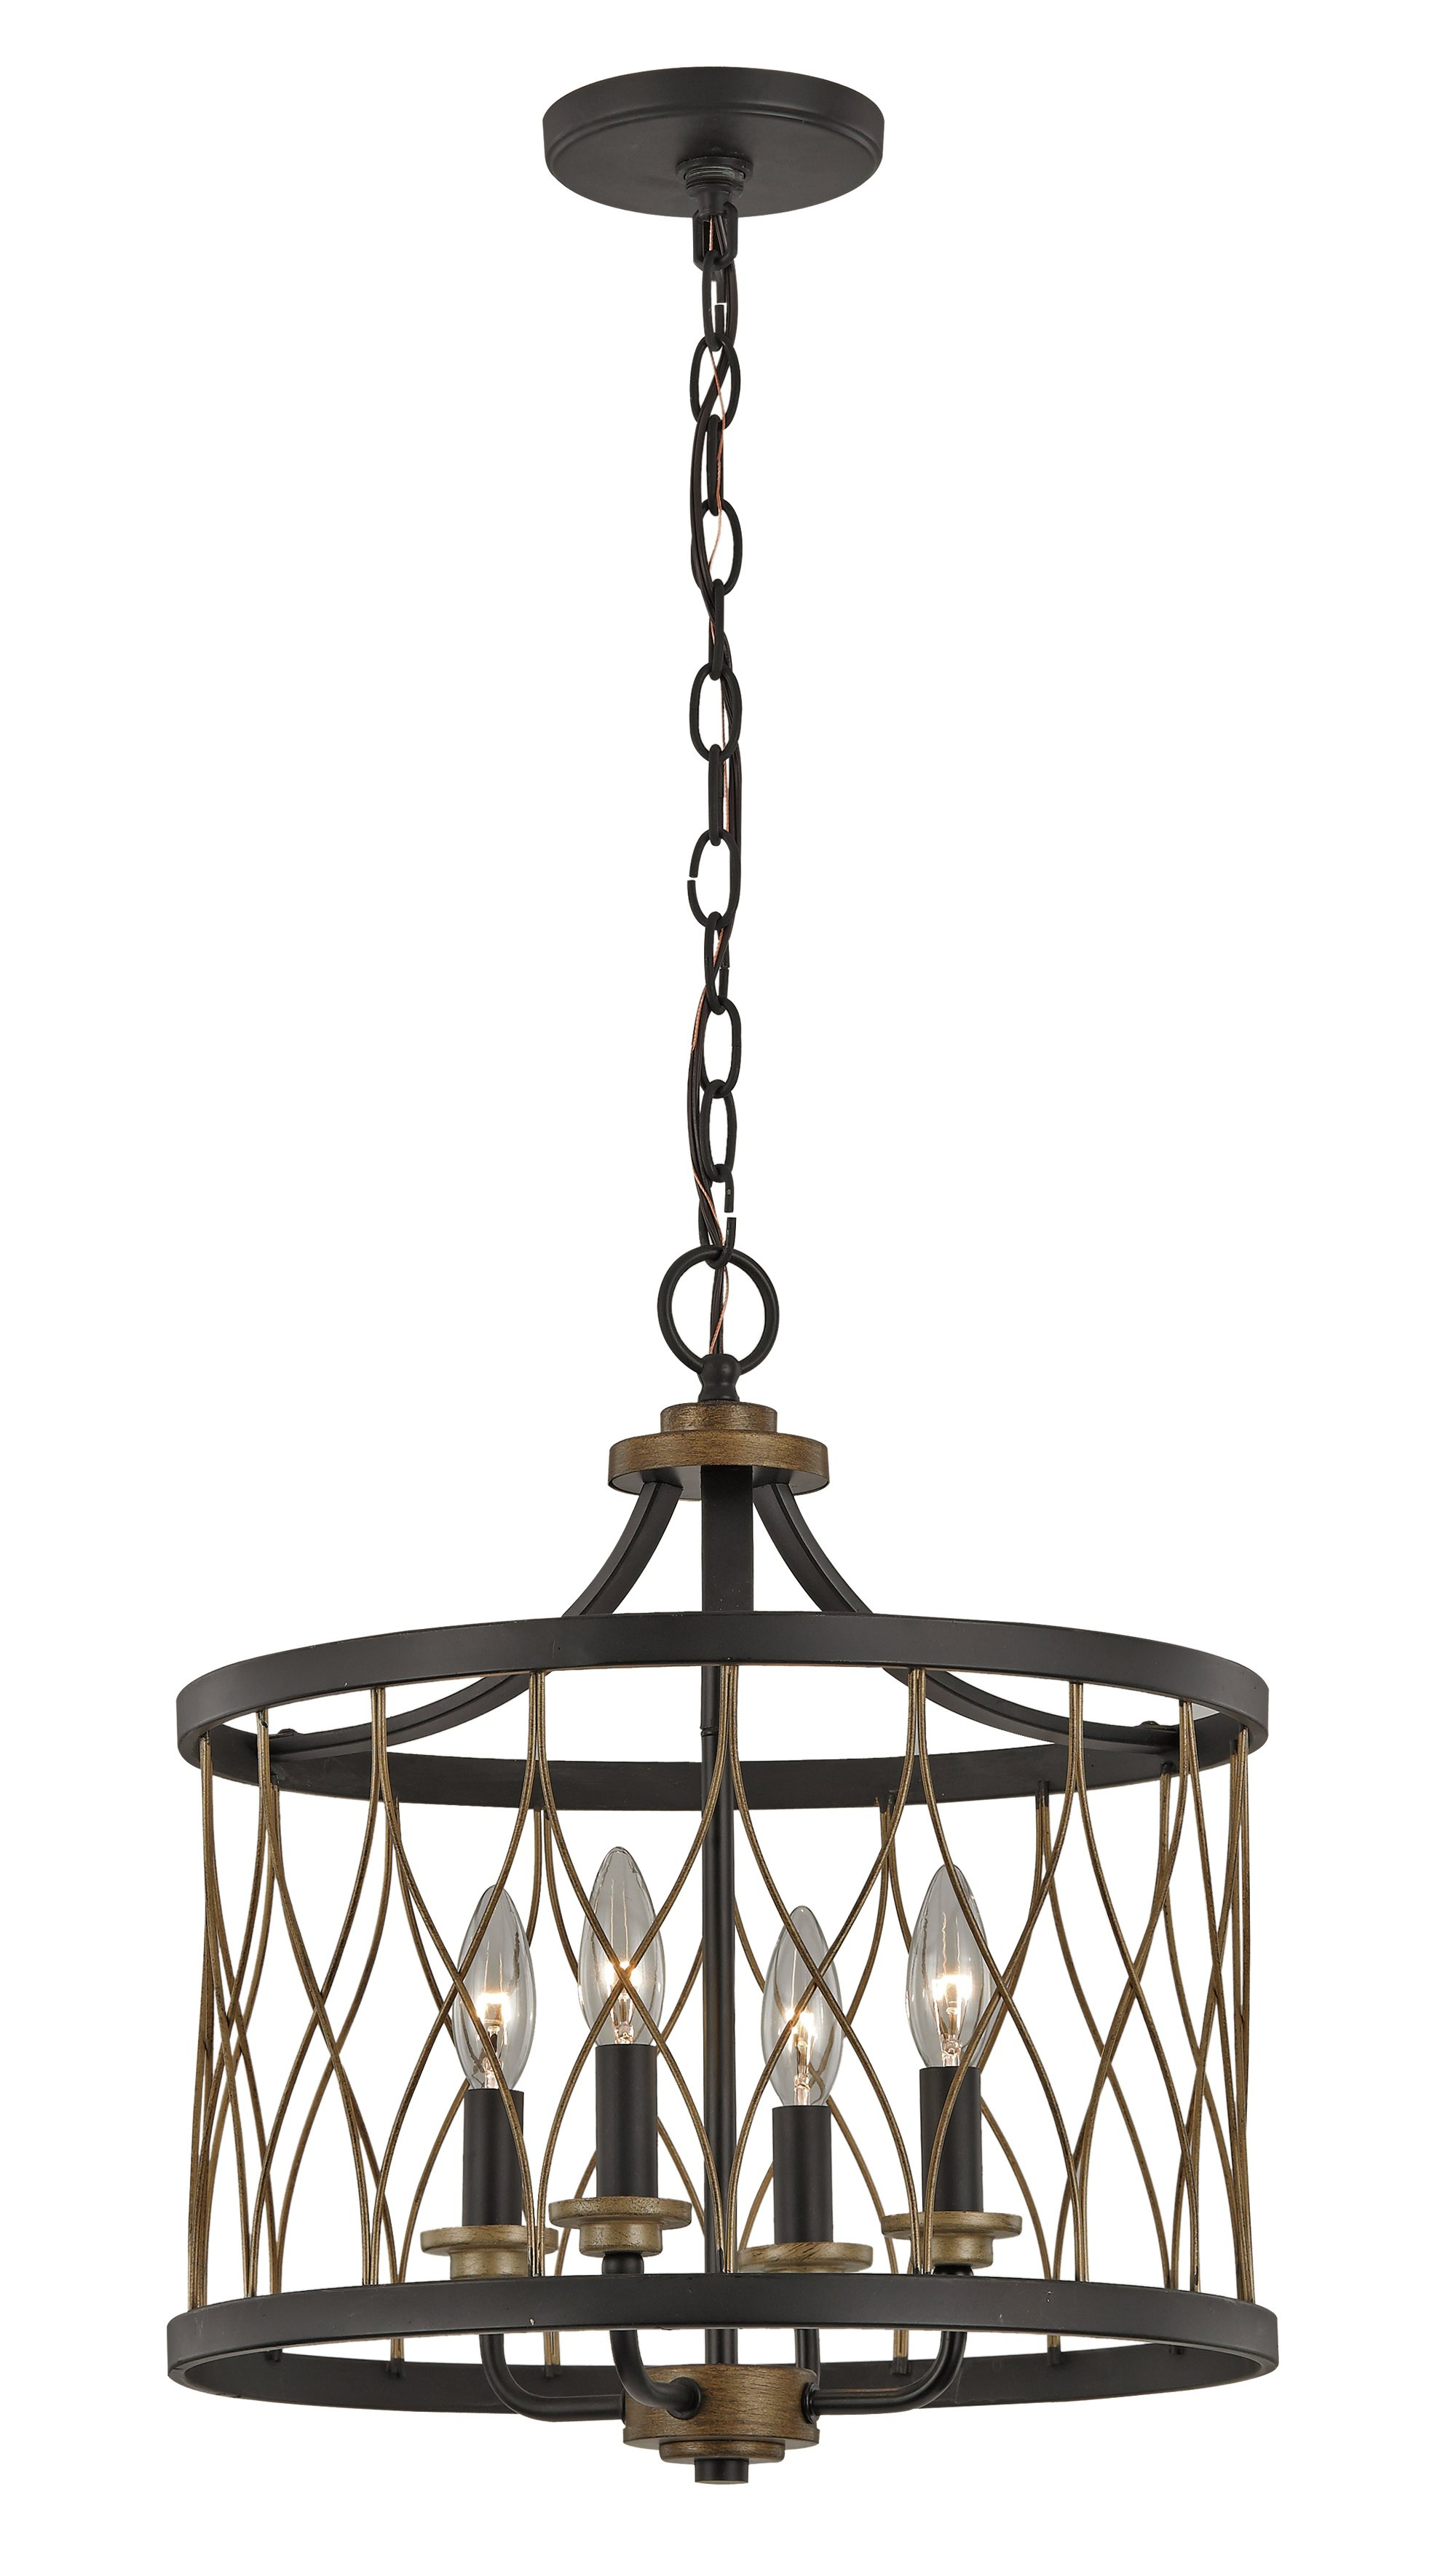 Laurel Foundry Modern Farmhouse Denise 4 Light Lantern Drum Intended For 2020 Armande 4 Light Lantern Drum Pendants (View 8 of 20)